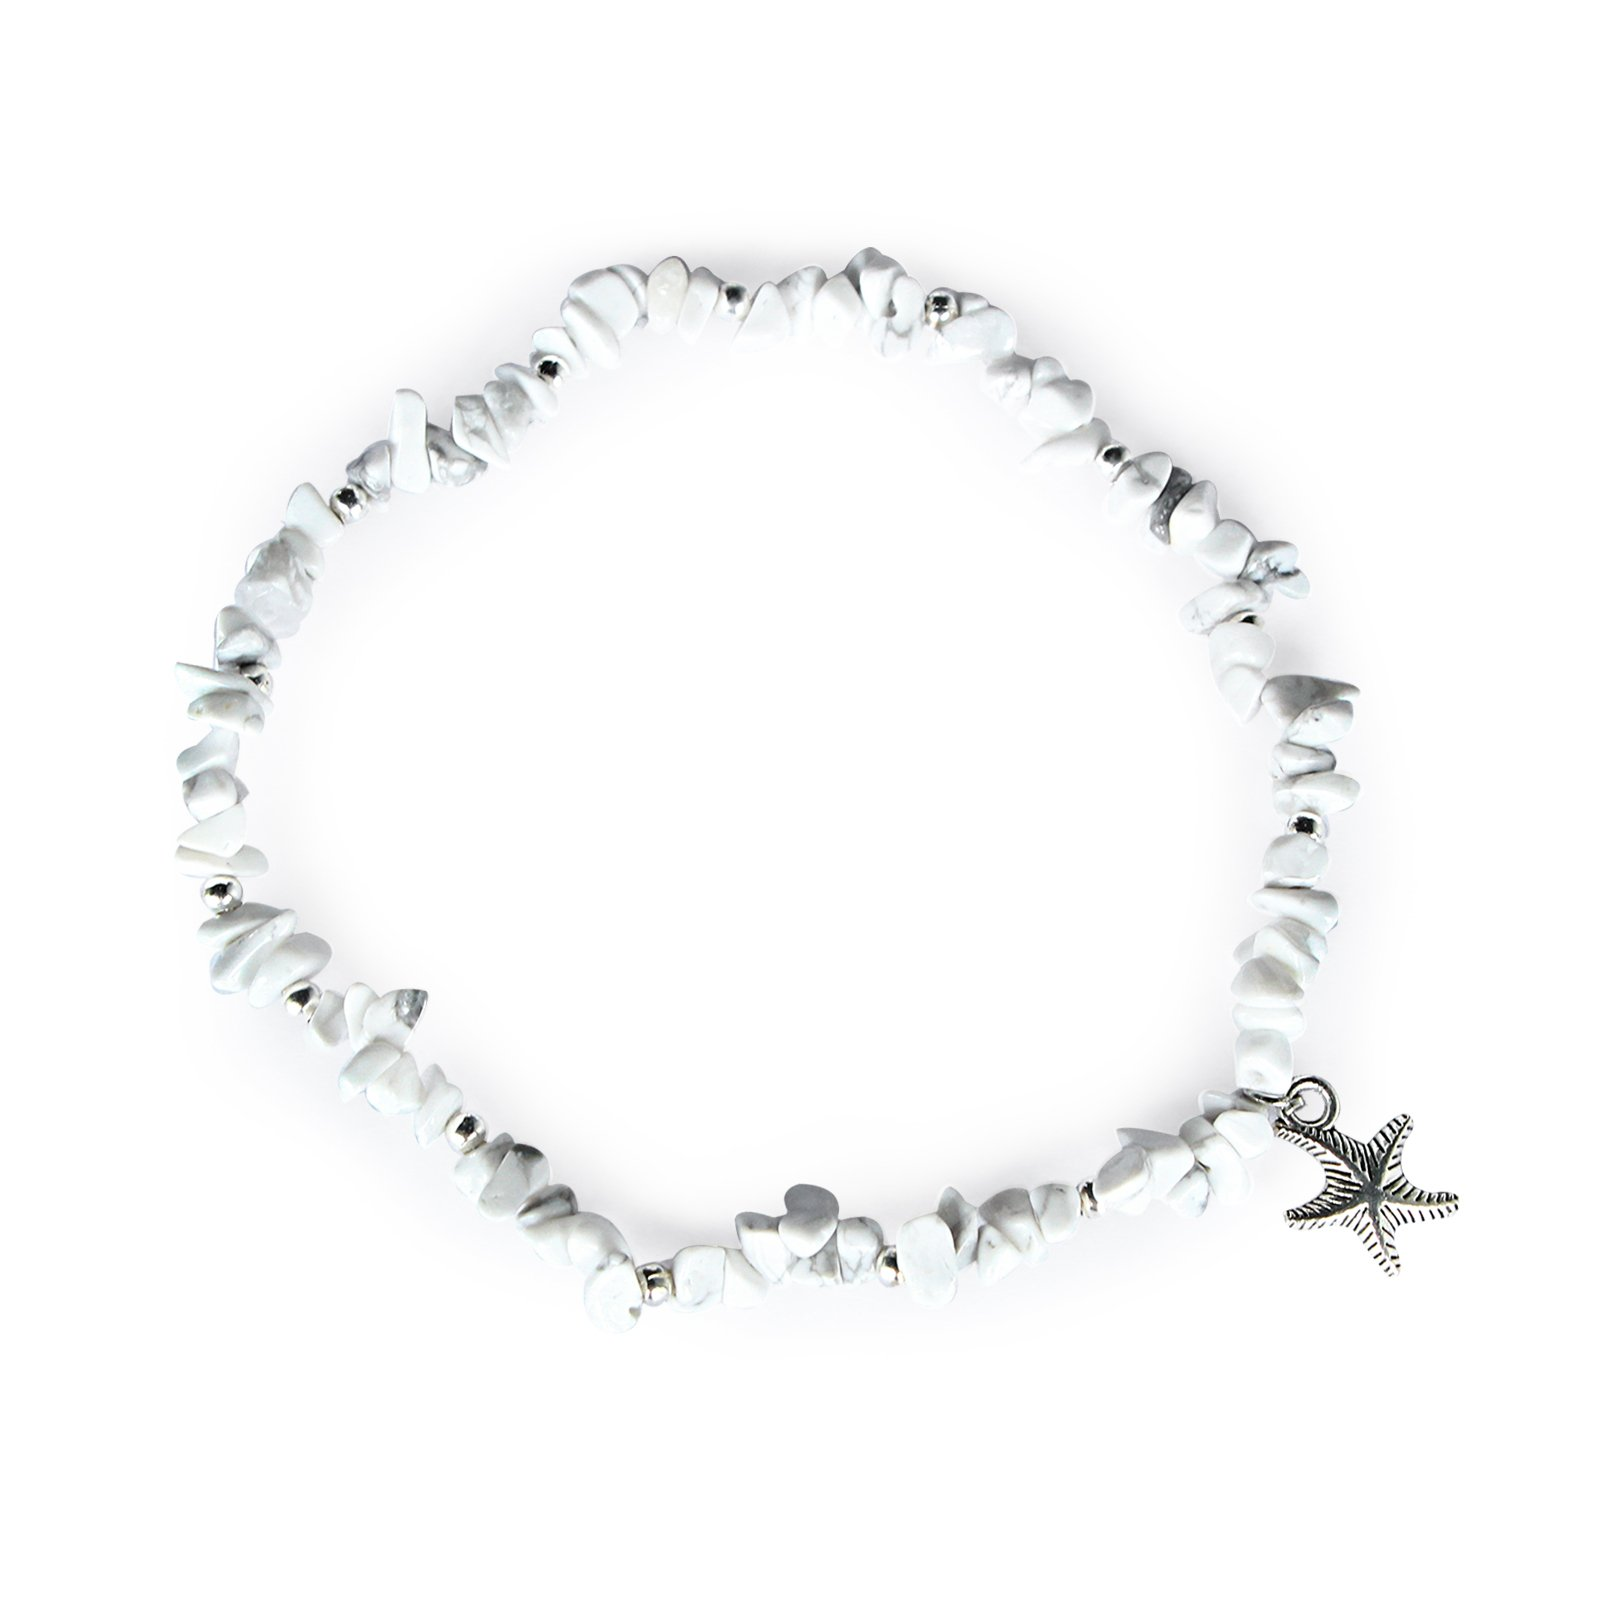 Me&Hz Summer White Anklets for Women Girls Fashion Beach Ankle Bracelets with Charm Stretch Silver Starfish Beads Anklets